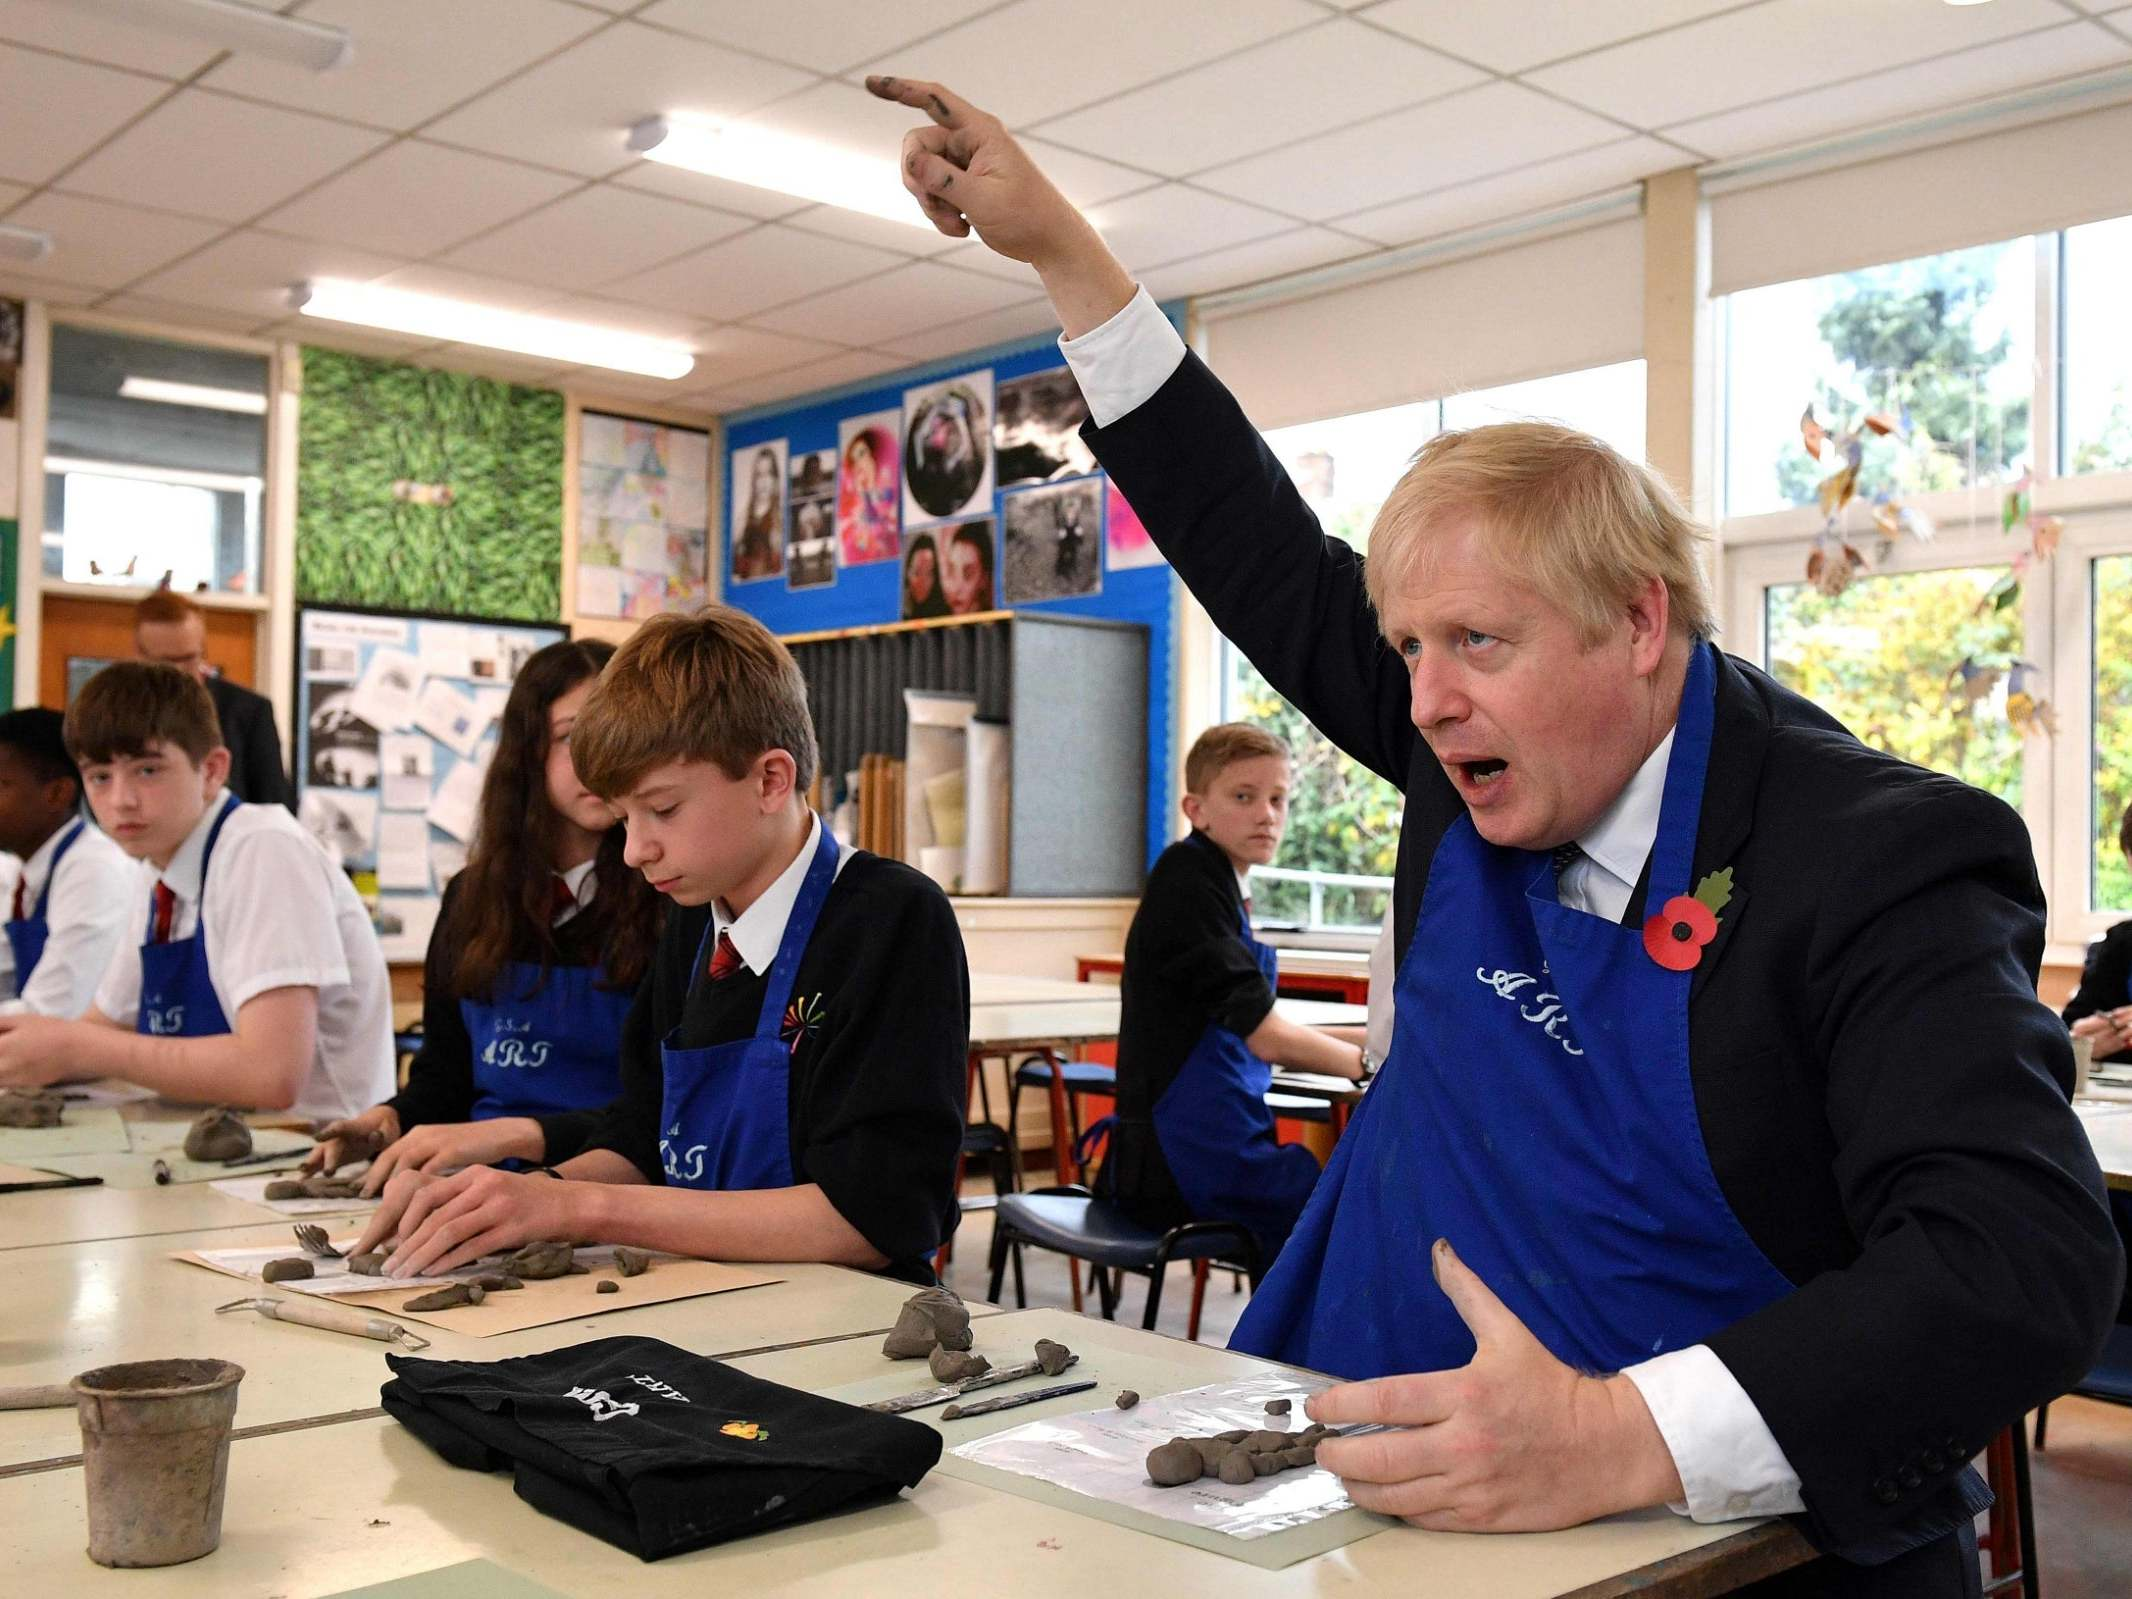 Boris Johnson news – live: PM rambles about Anthony Gormley to school children, after contradicting own government in false Brexit claims to supporters